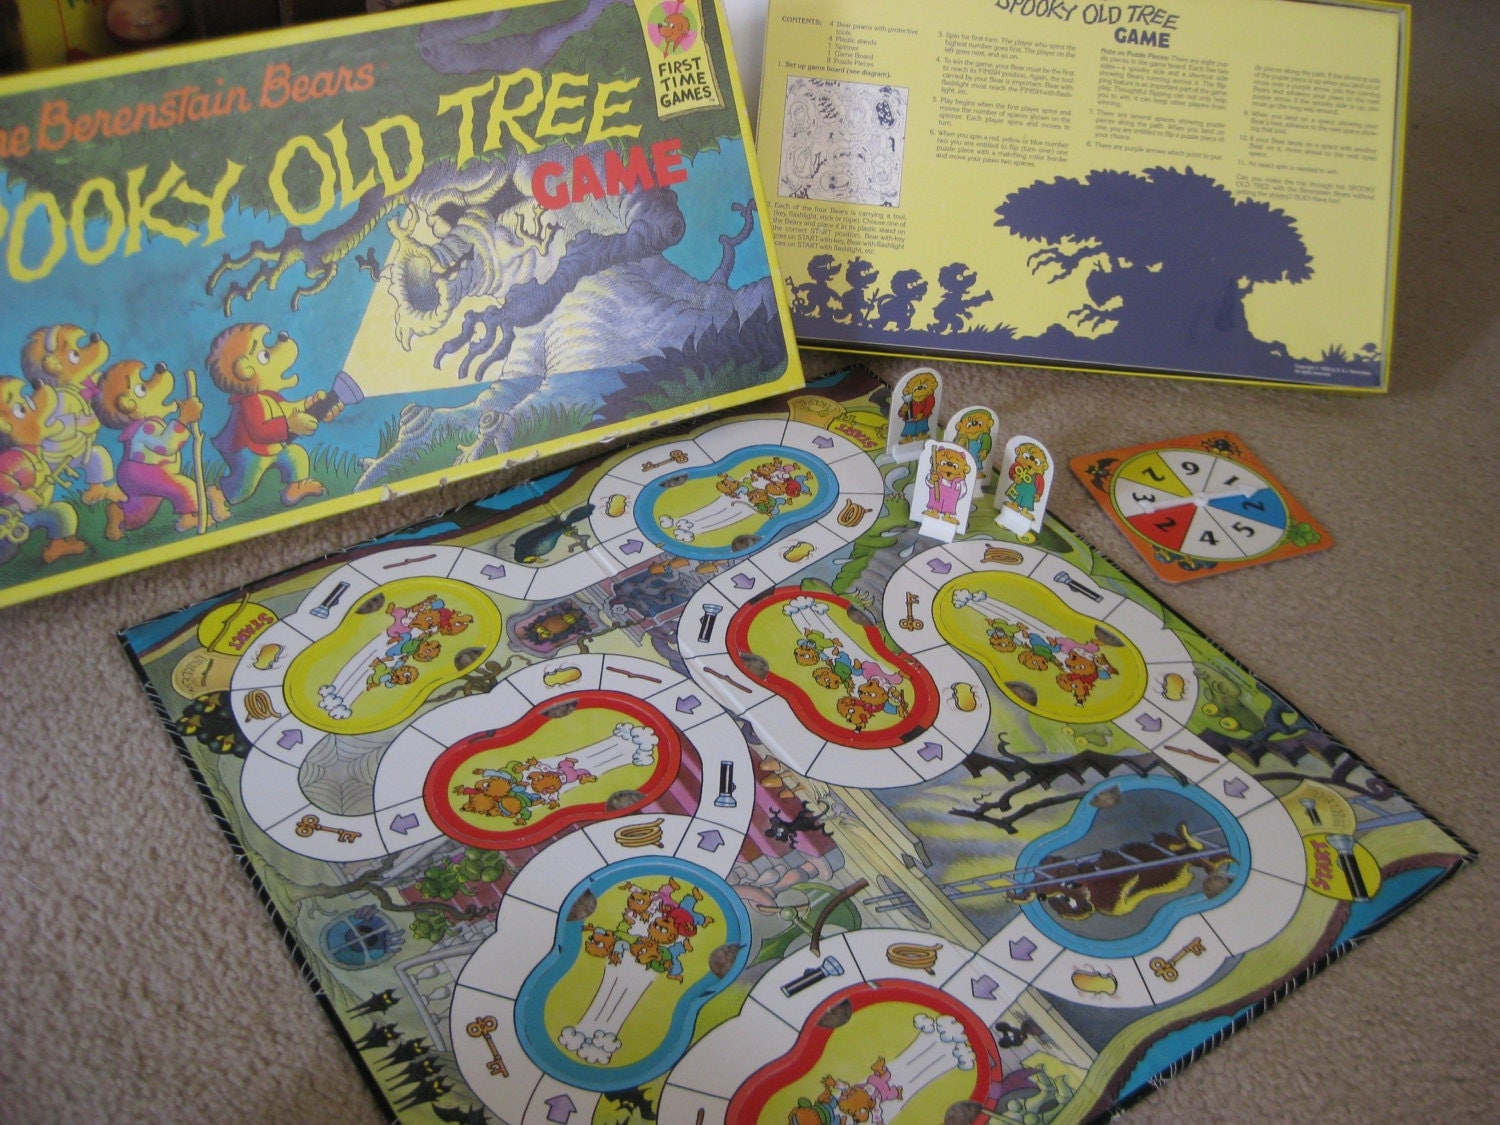 The Spooky Old Tree Game | Berenstain Bears Wiki | Fandom